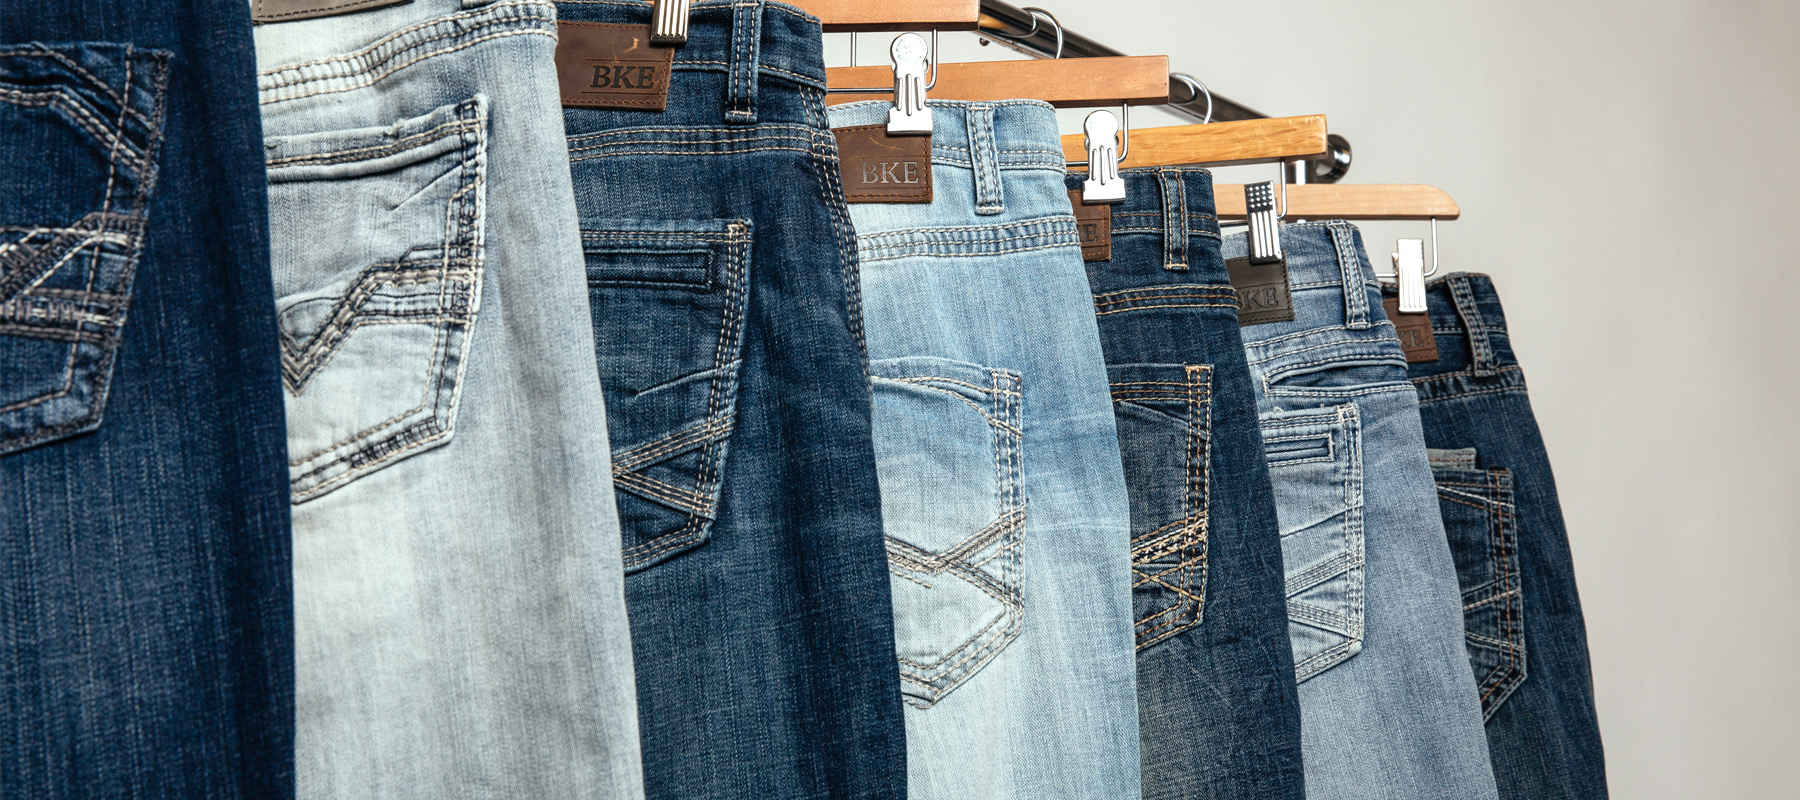 Different washes of jeans overlapping each other to show the wash and back pocket detail.